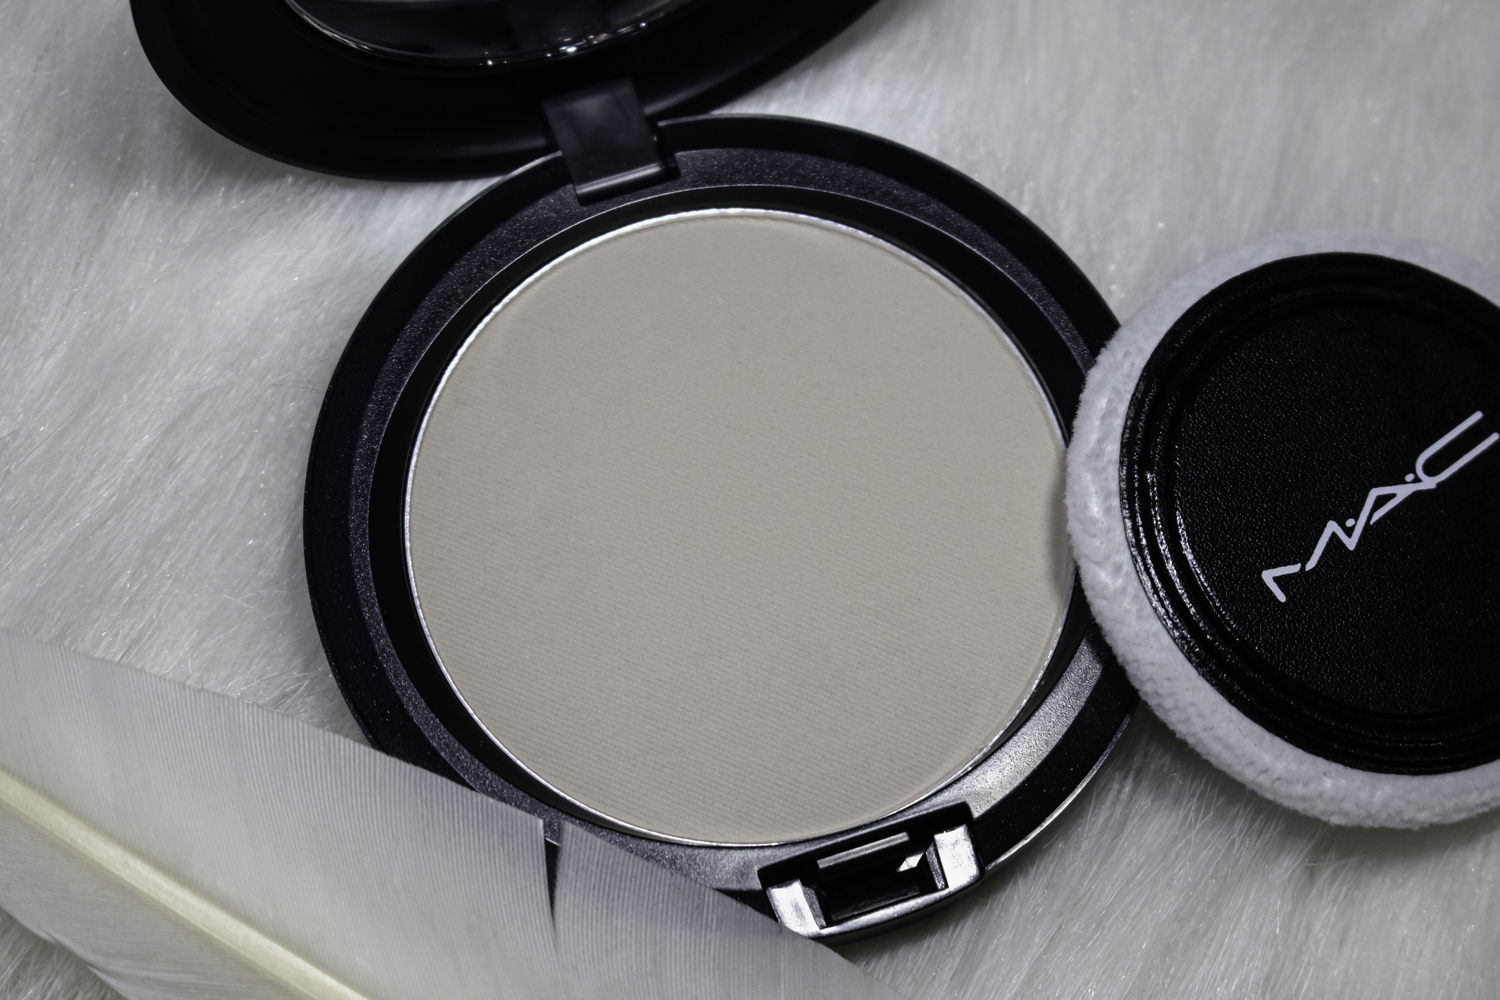 a clos eup picture of opened makeup owder by mac cosmetics